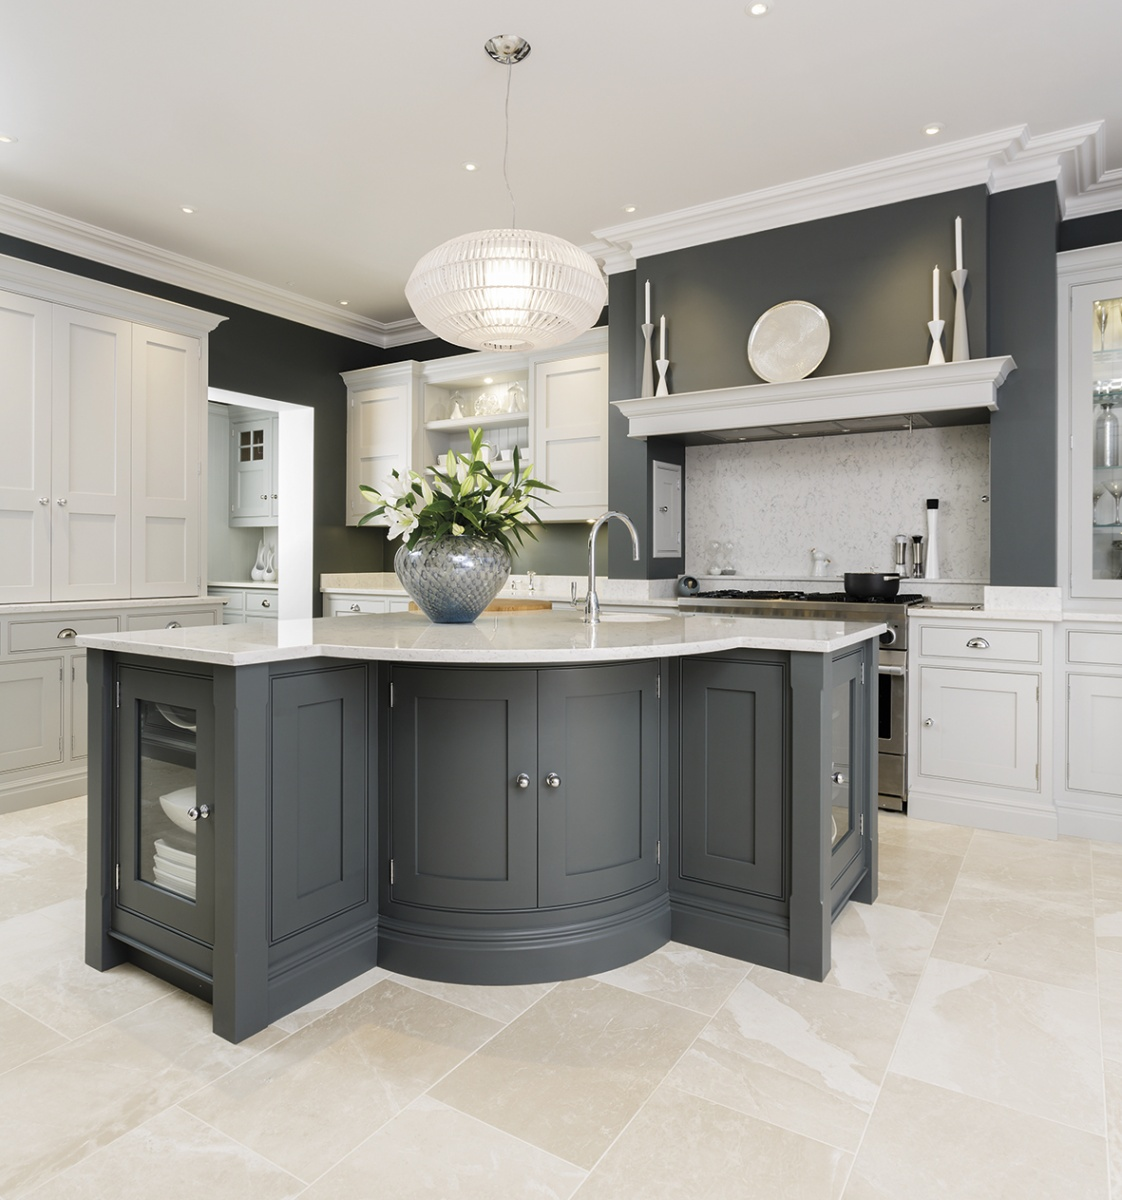 Bespoke kitchens - Images of kitchens ...